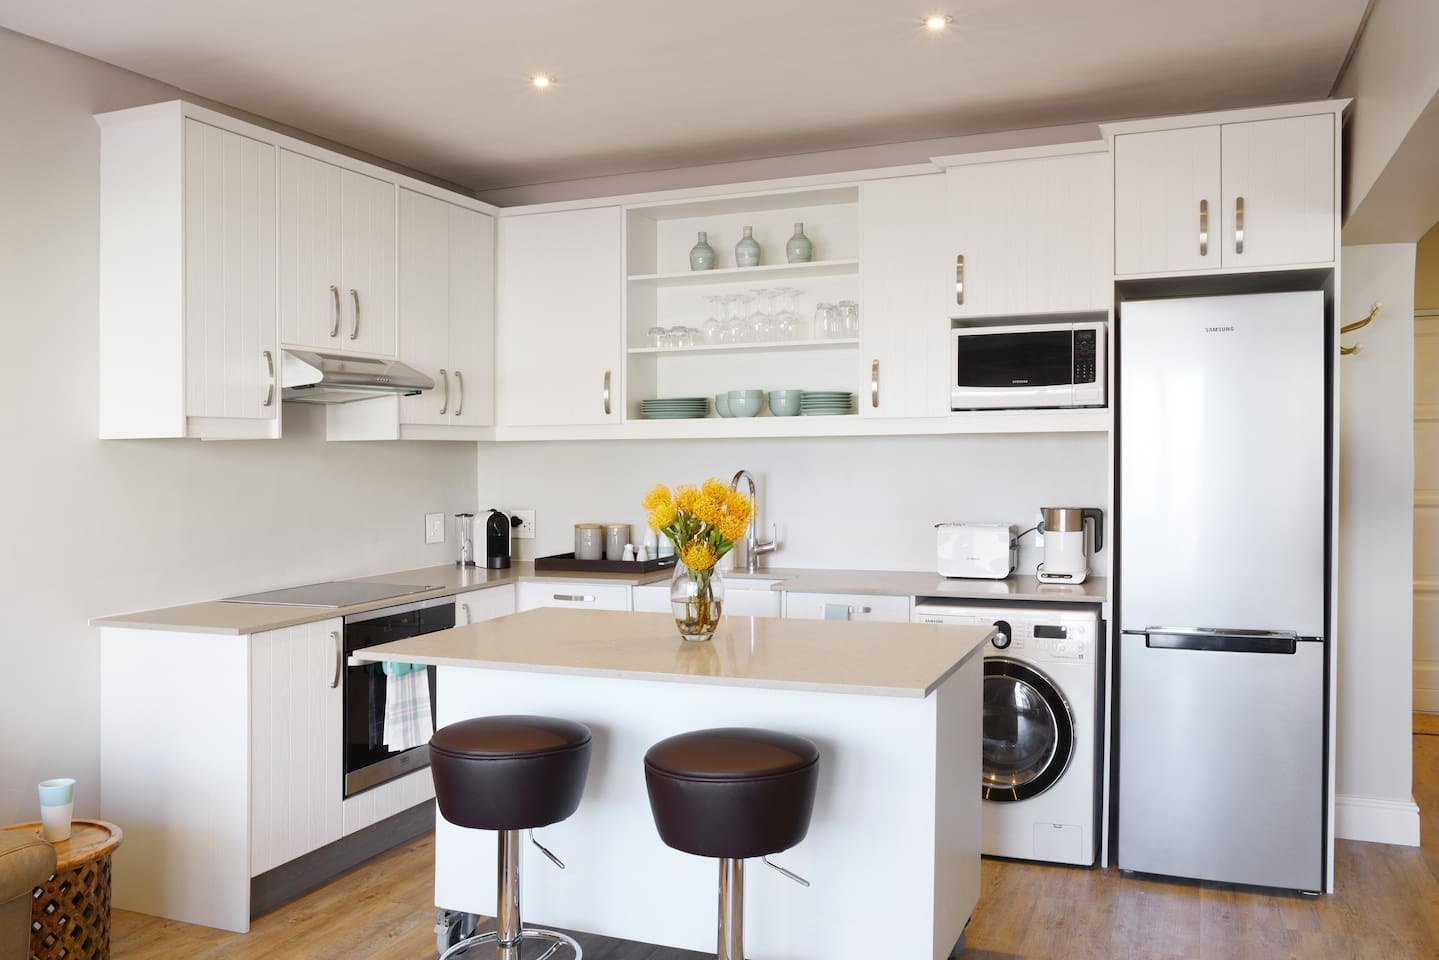 Kitchen area with island, equipped with touch oven, hob, extractor, microwave, washer dryer and full size fridge freezer